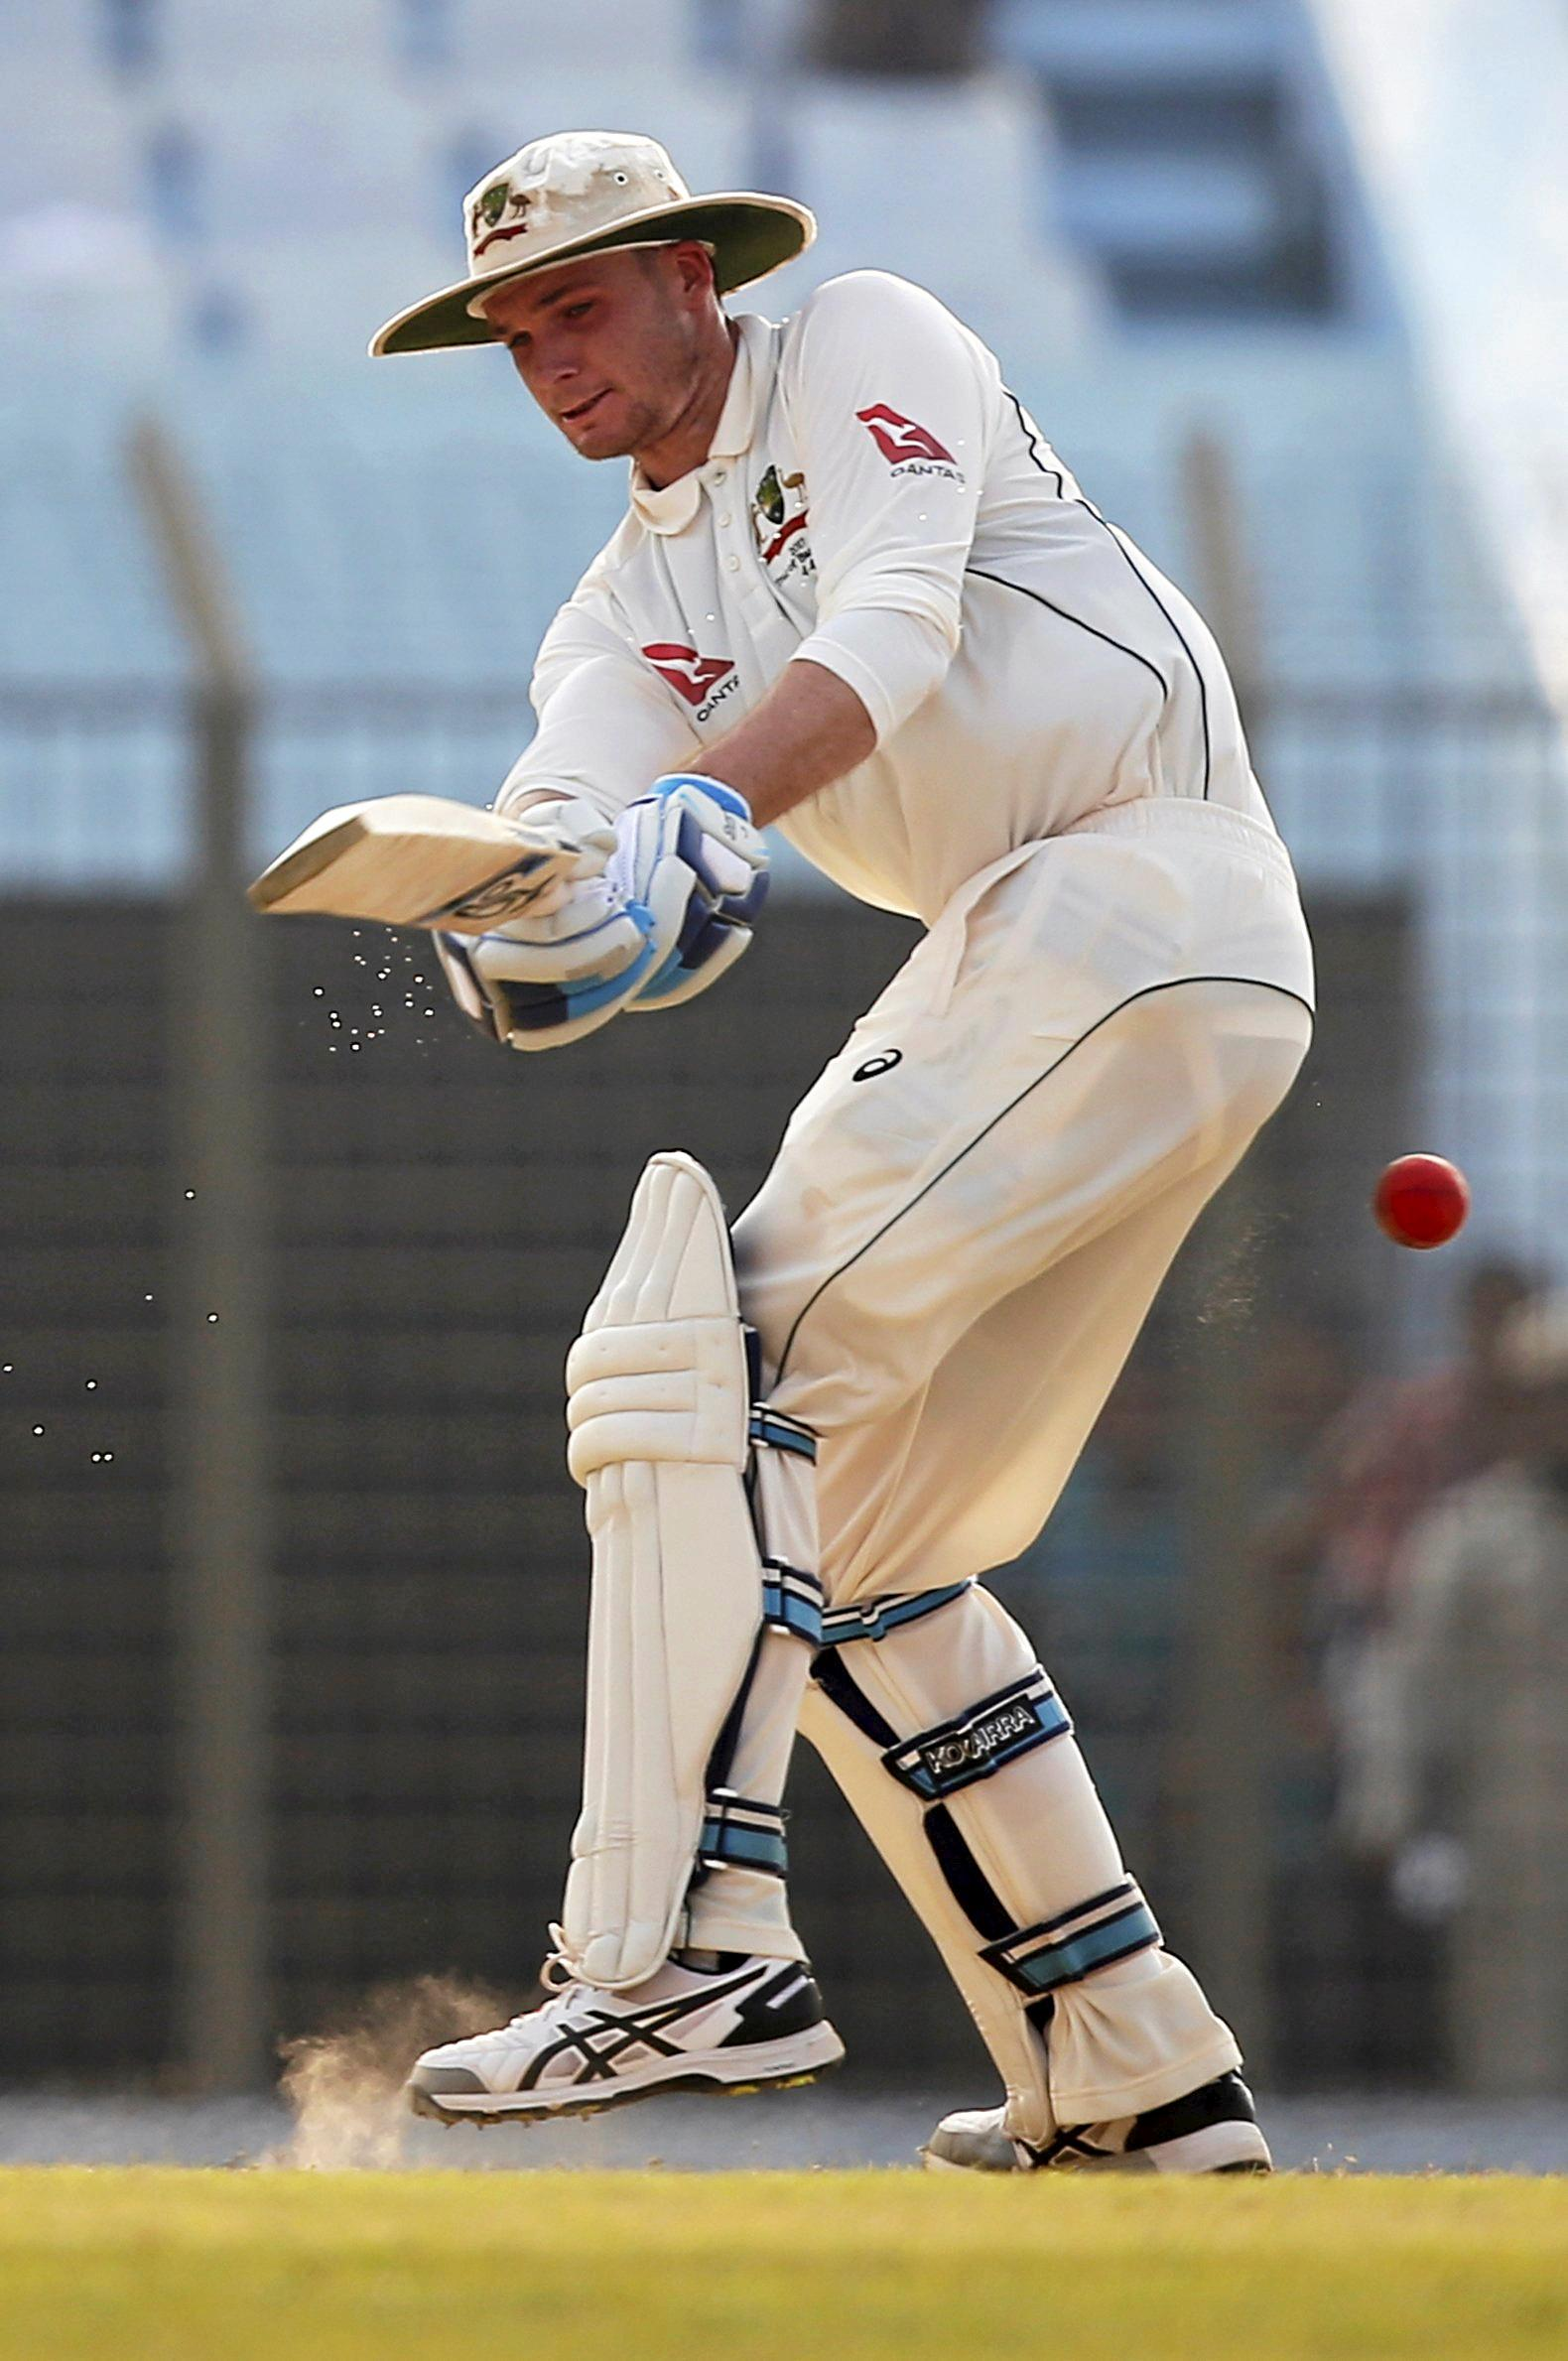 Peter Handscomb says playing in heat in Bangladesh has prepared him for a hot summer series.